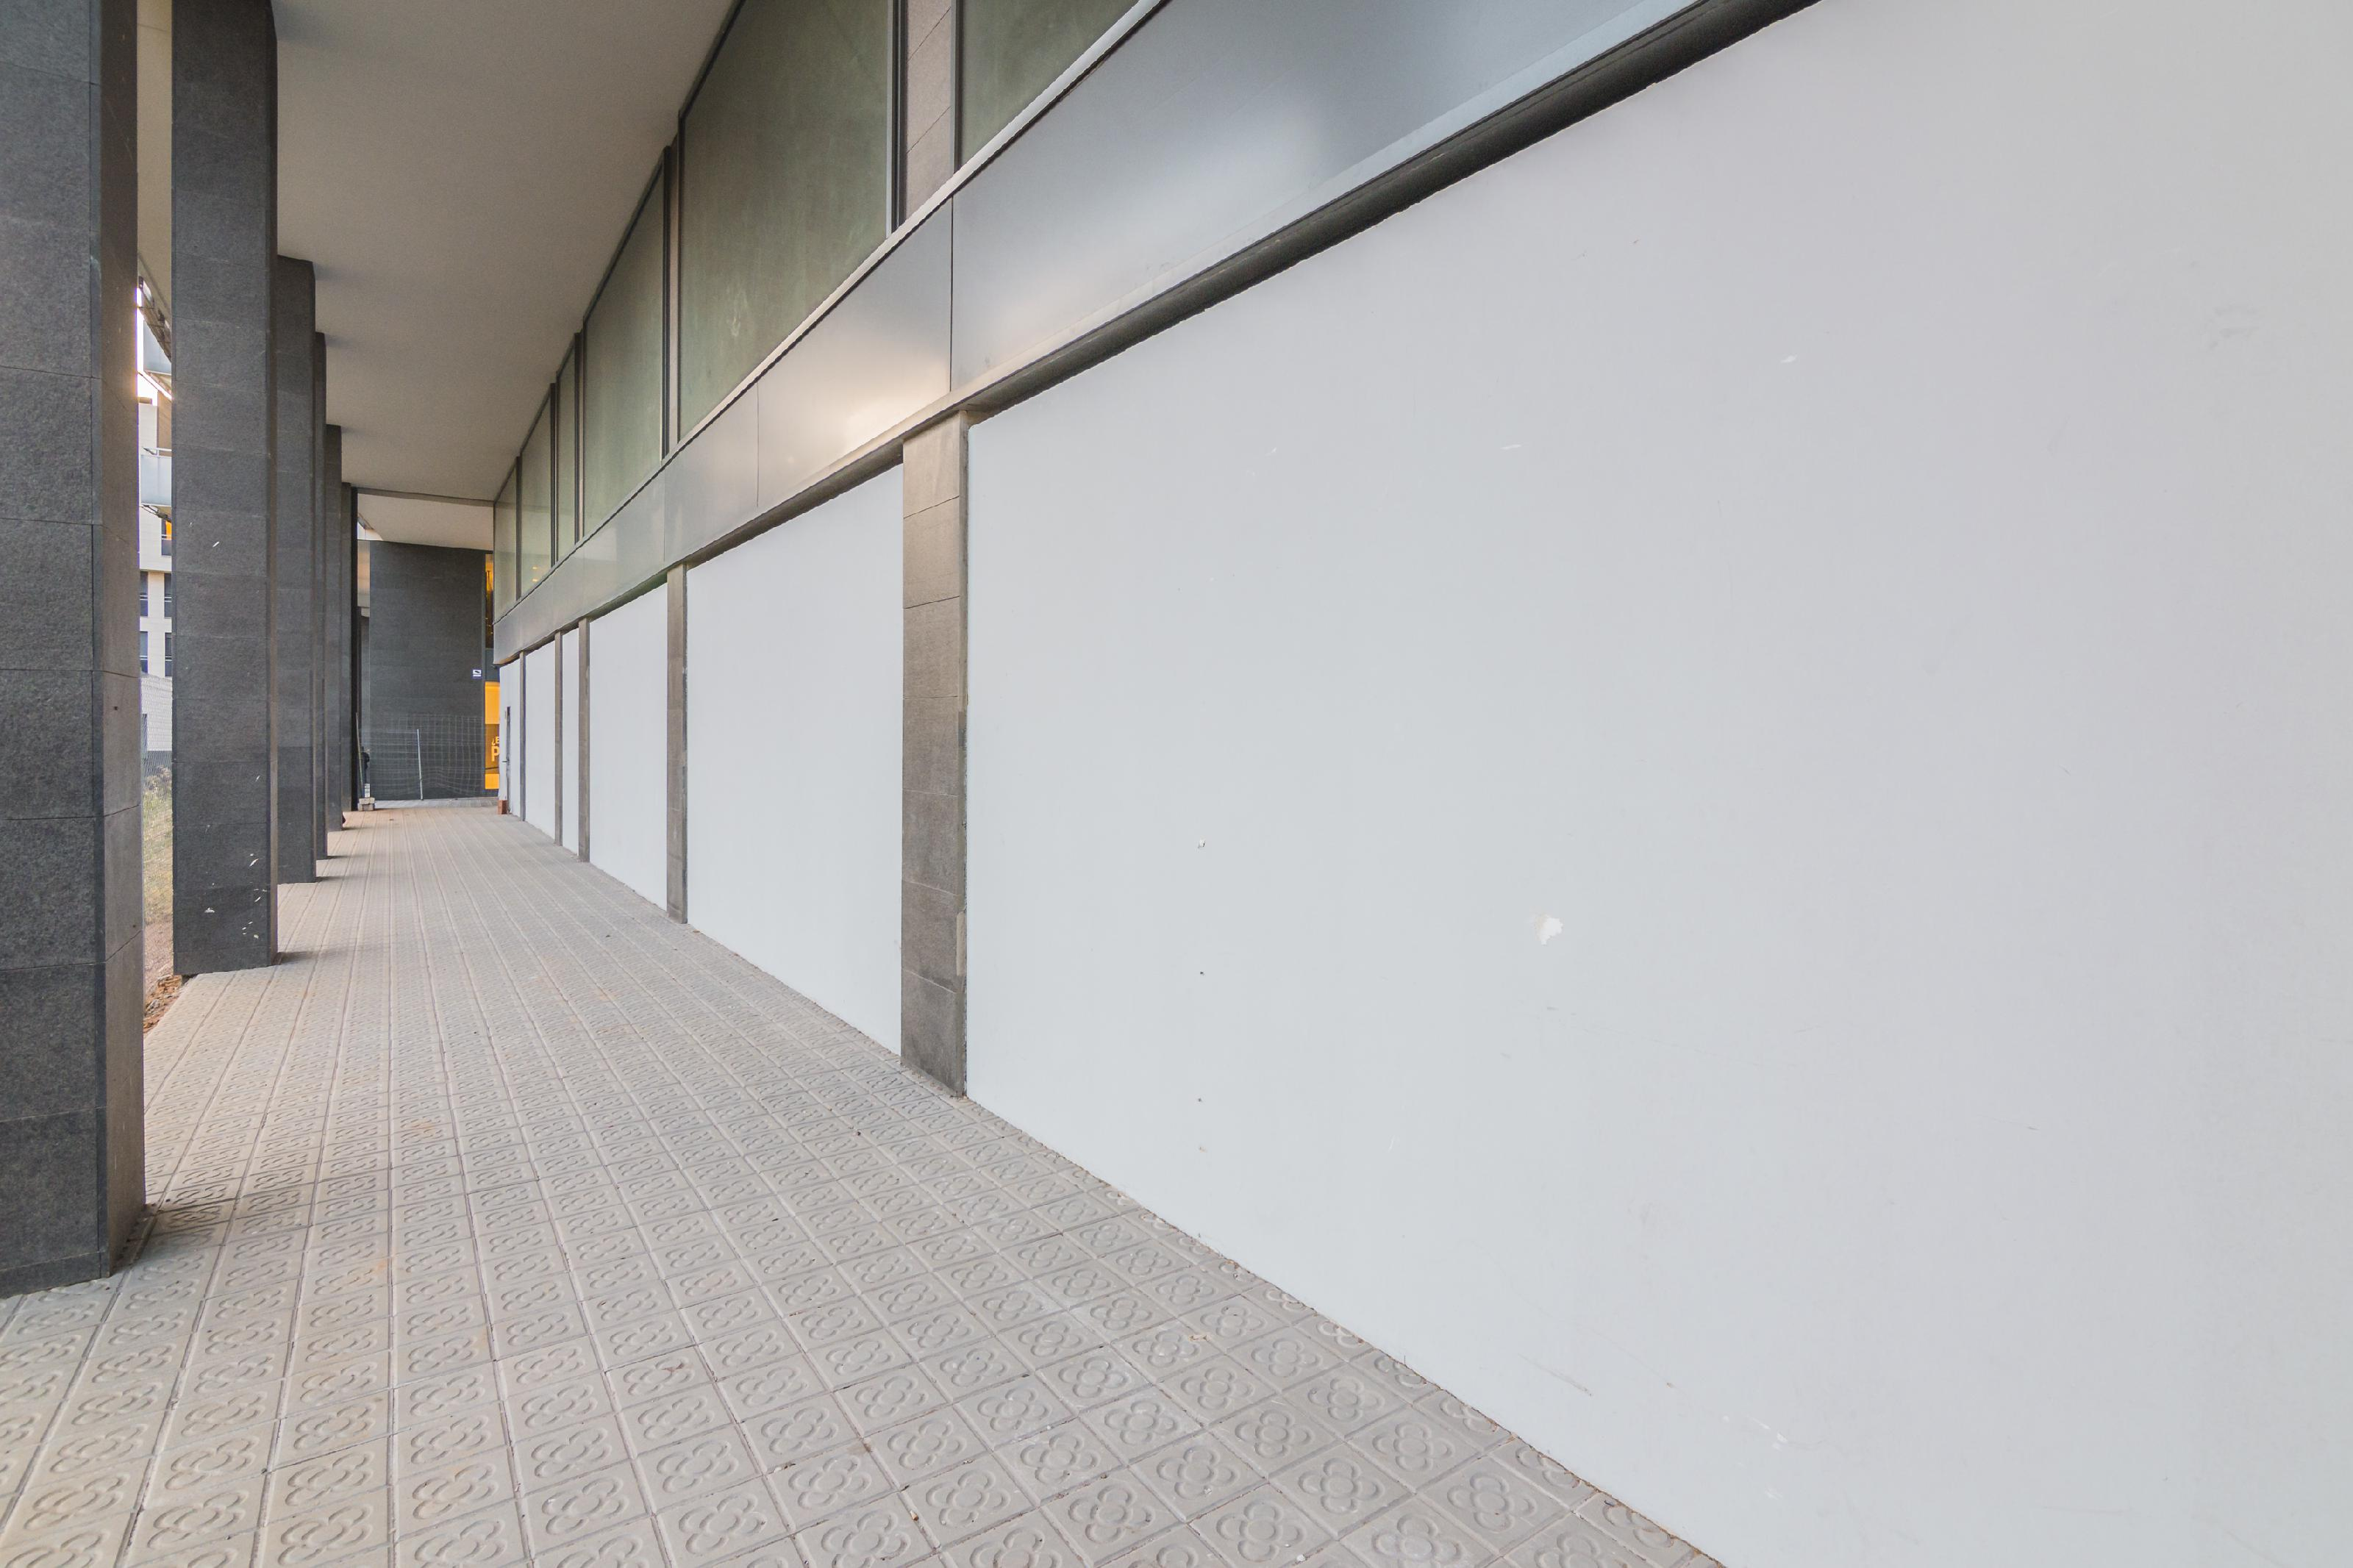 217800 Commercial Premises for sale in Les Corts, Les Corts 4